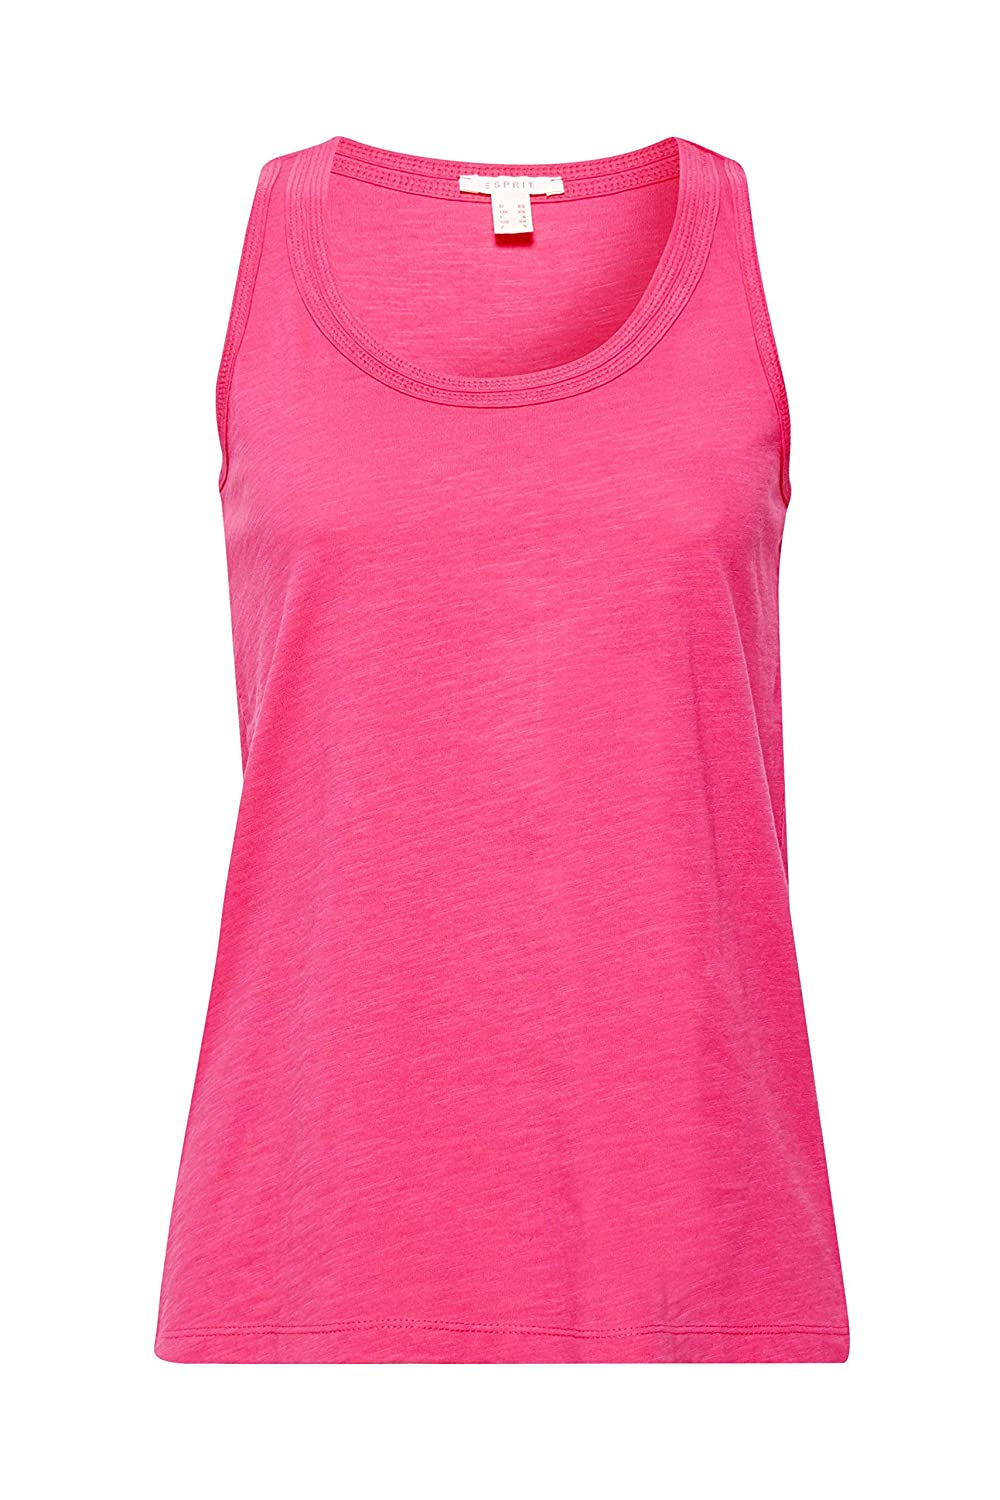 ESPRIT Damen Top